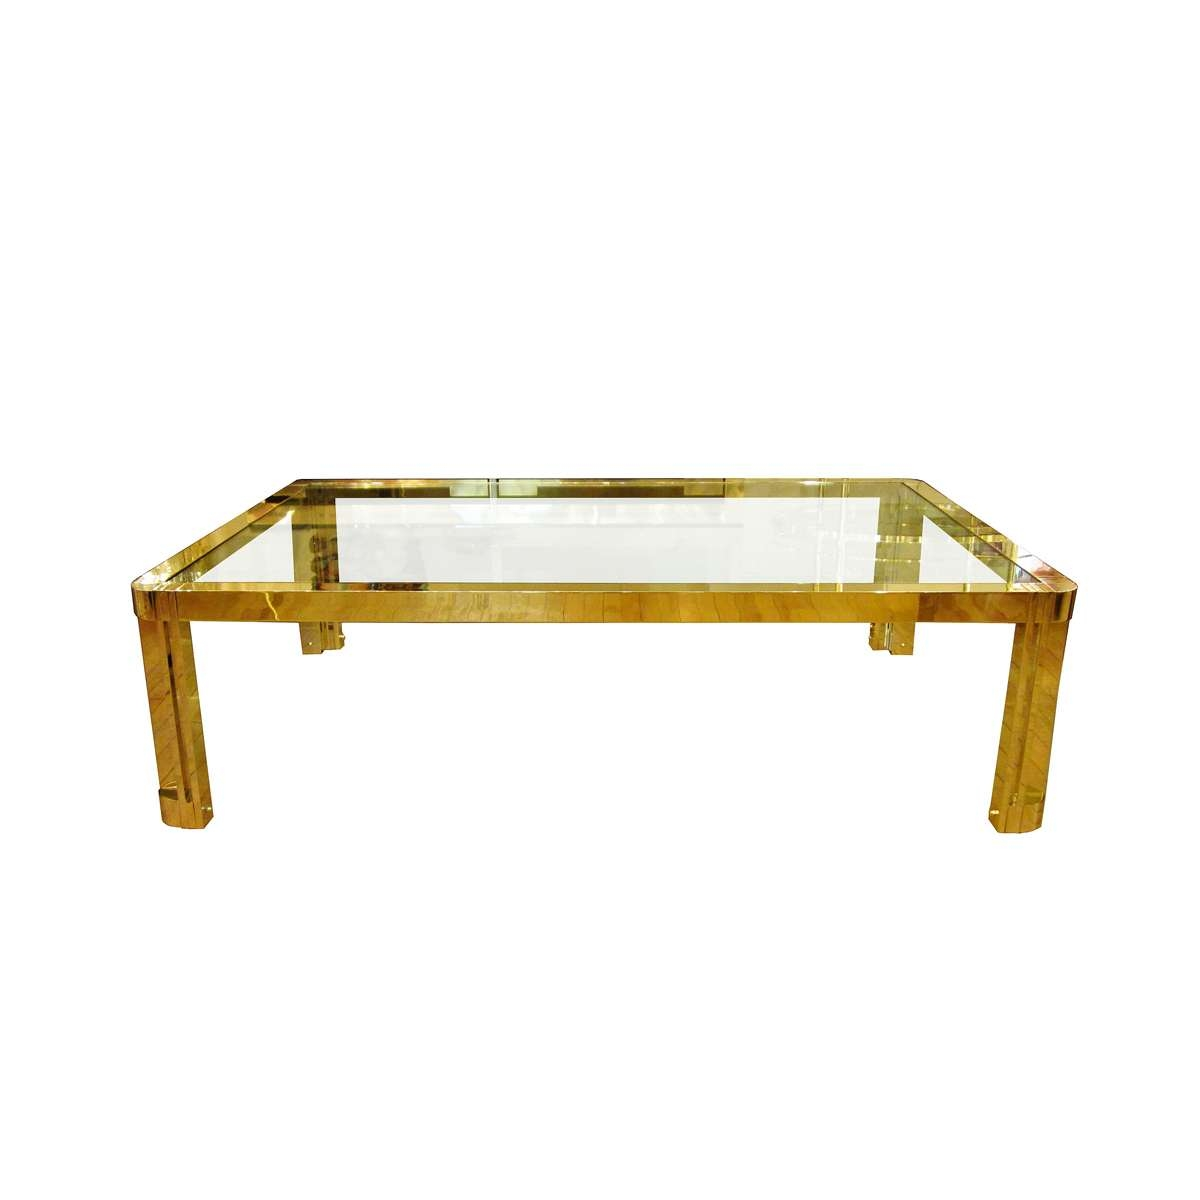 Large Rectangular Brass And Glass Coffee Table With Incised Design Throughout Famous Large Glass Coffee Tables (View 13 of 20)